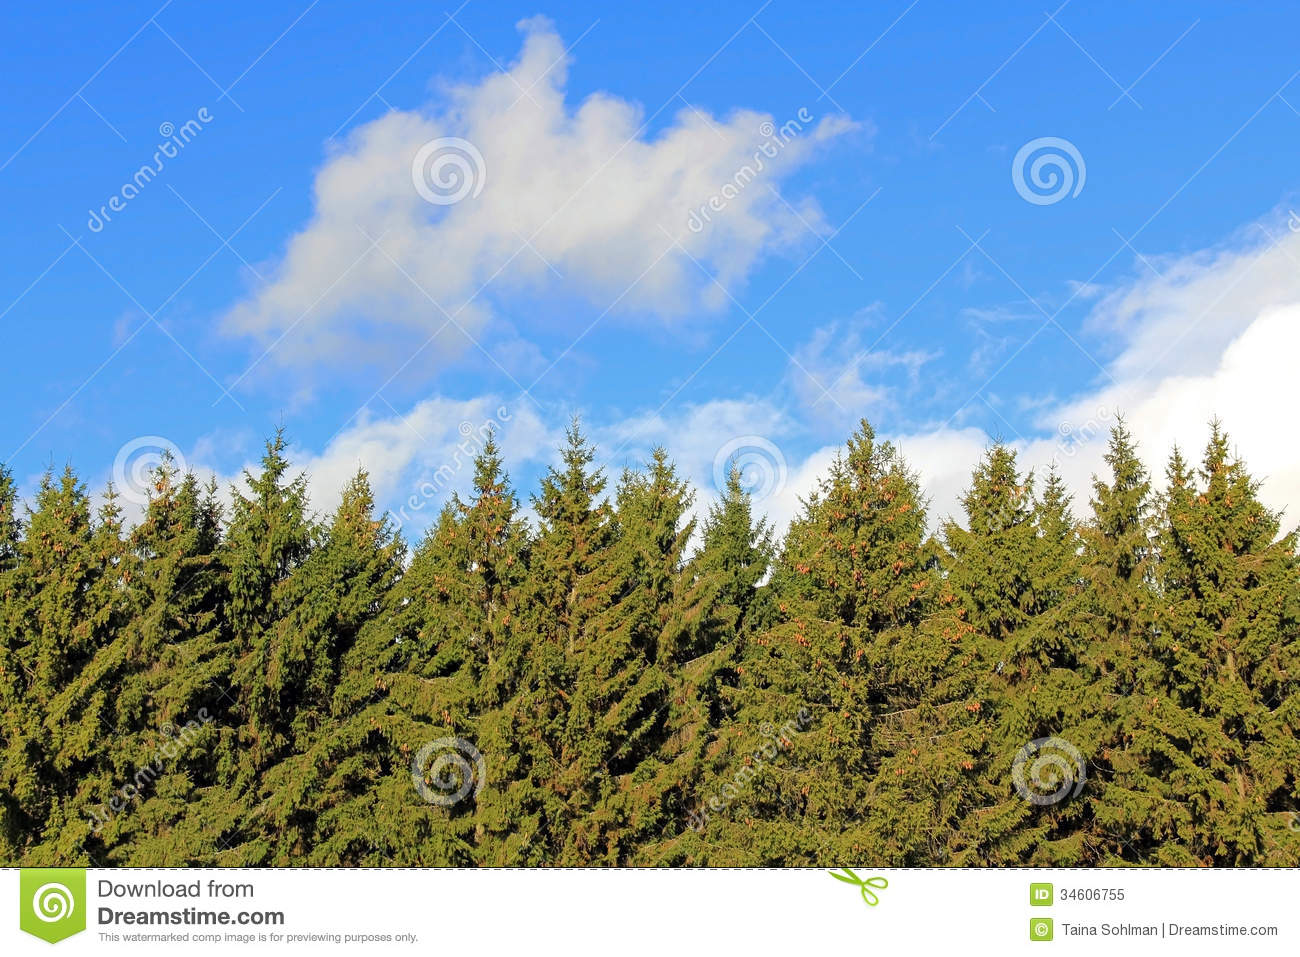 Background Of Spruce Tree Tops And Blue Sky With White